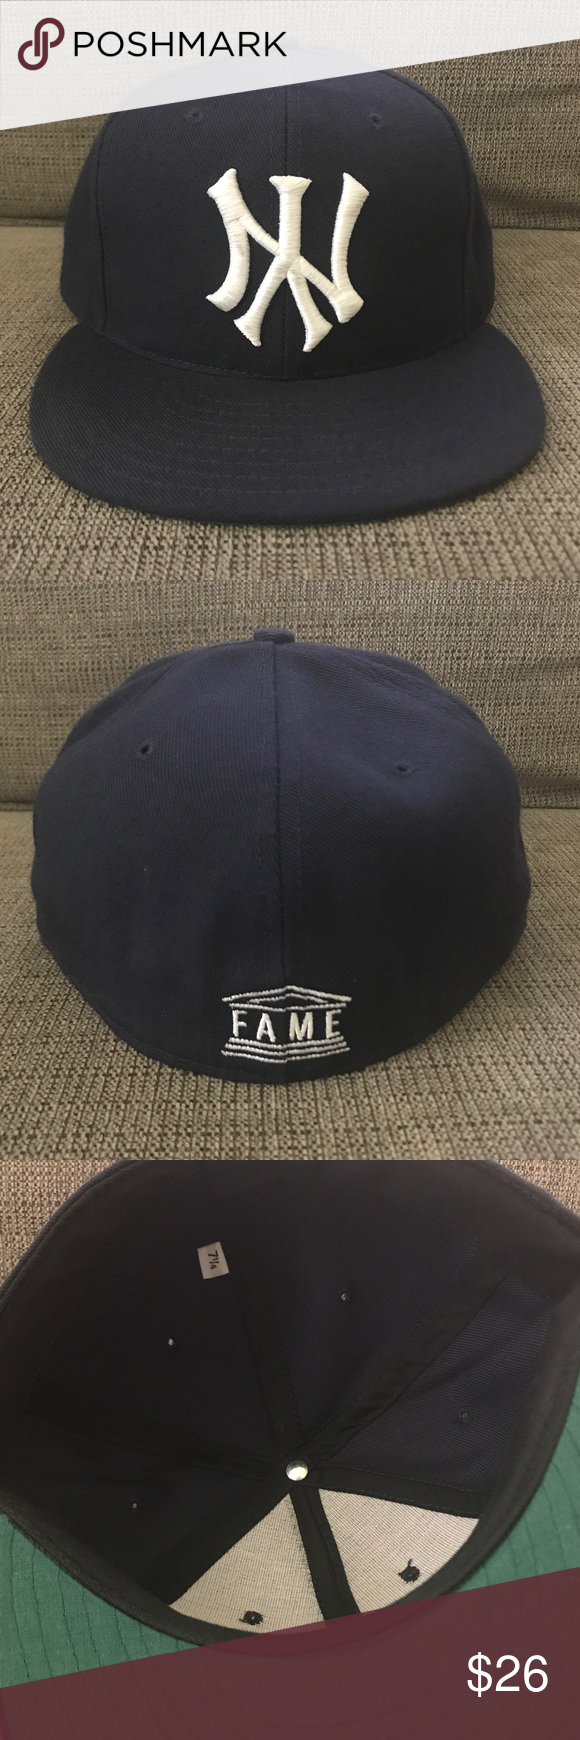 9ba3383f greece killlthehype upside down la hat for sale in carson ca offerup c95fc  58105; shopping hall of fame ny fitted cap hof did a series of team hats  with ...